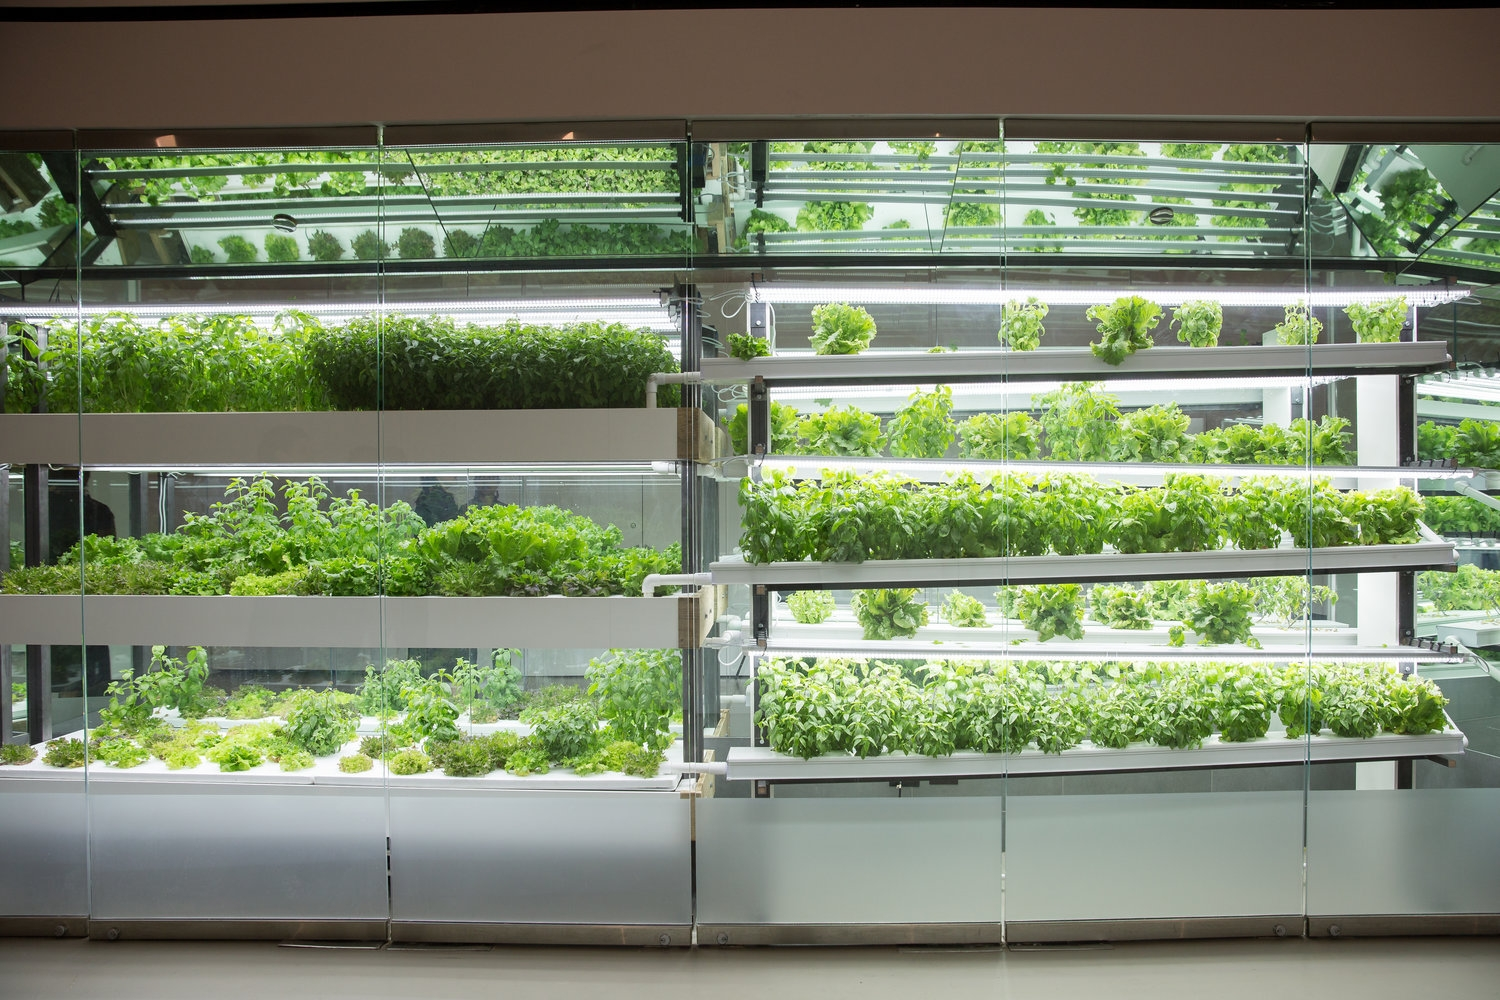 Project Farmhouse's vertical system - designed by HortLED